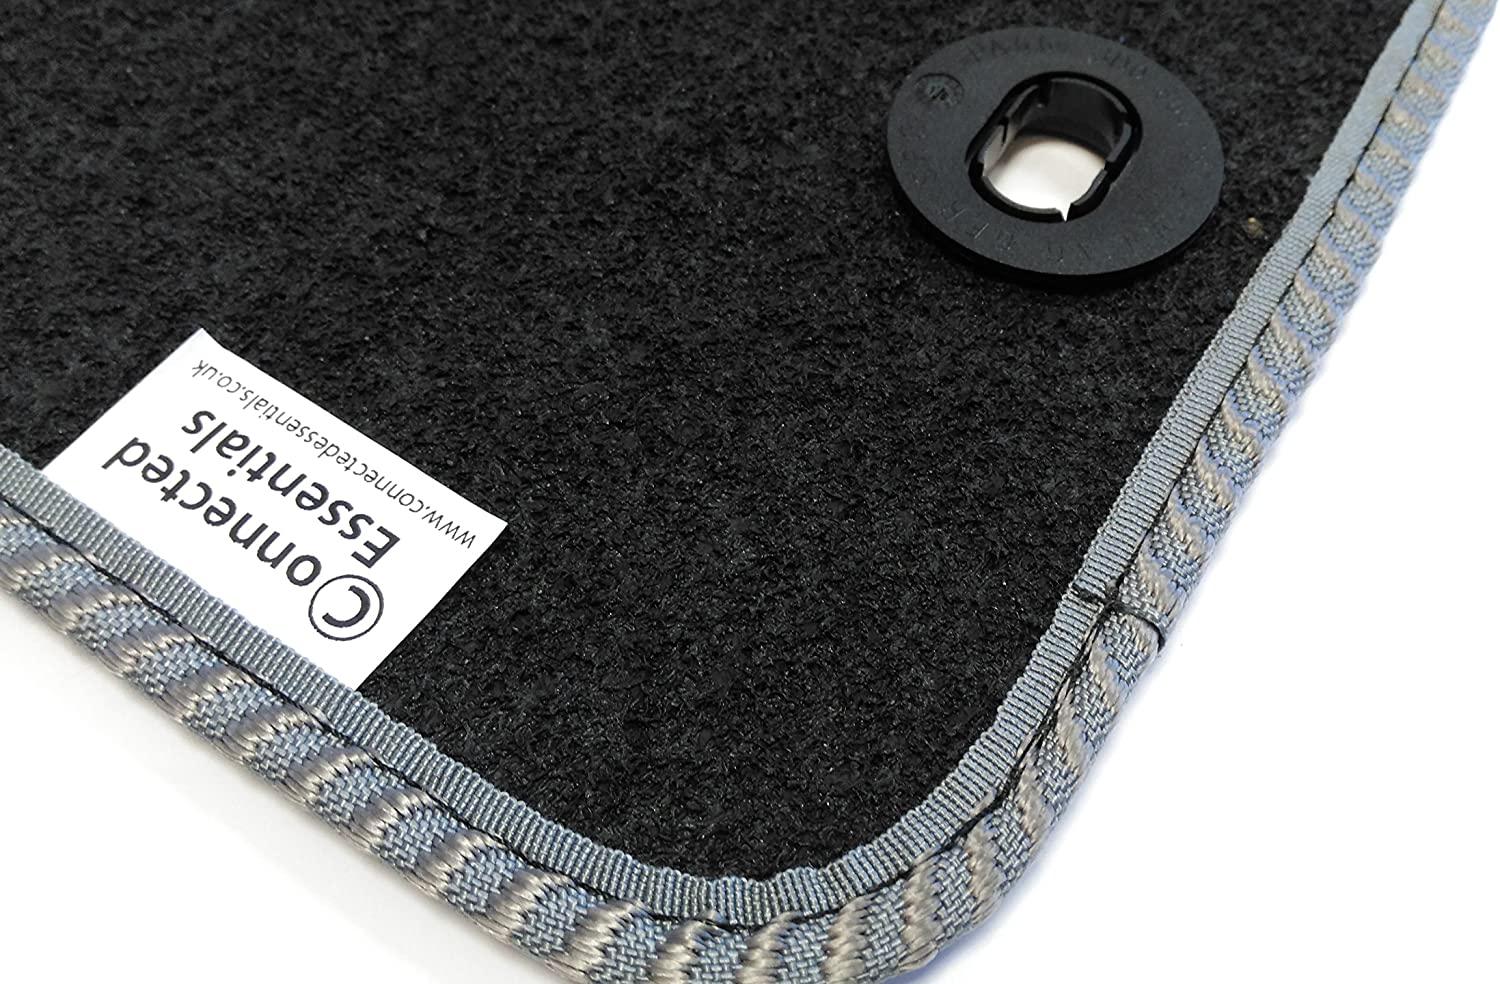 2005-Onwards Connected Essentials CEB750 Car Mat Set for 5 Prestige Bootmat Black with Grey Trim